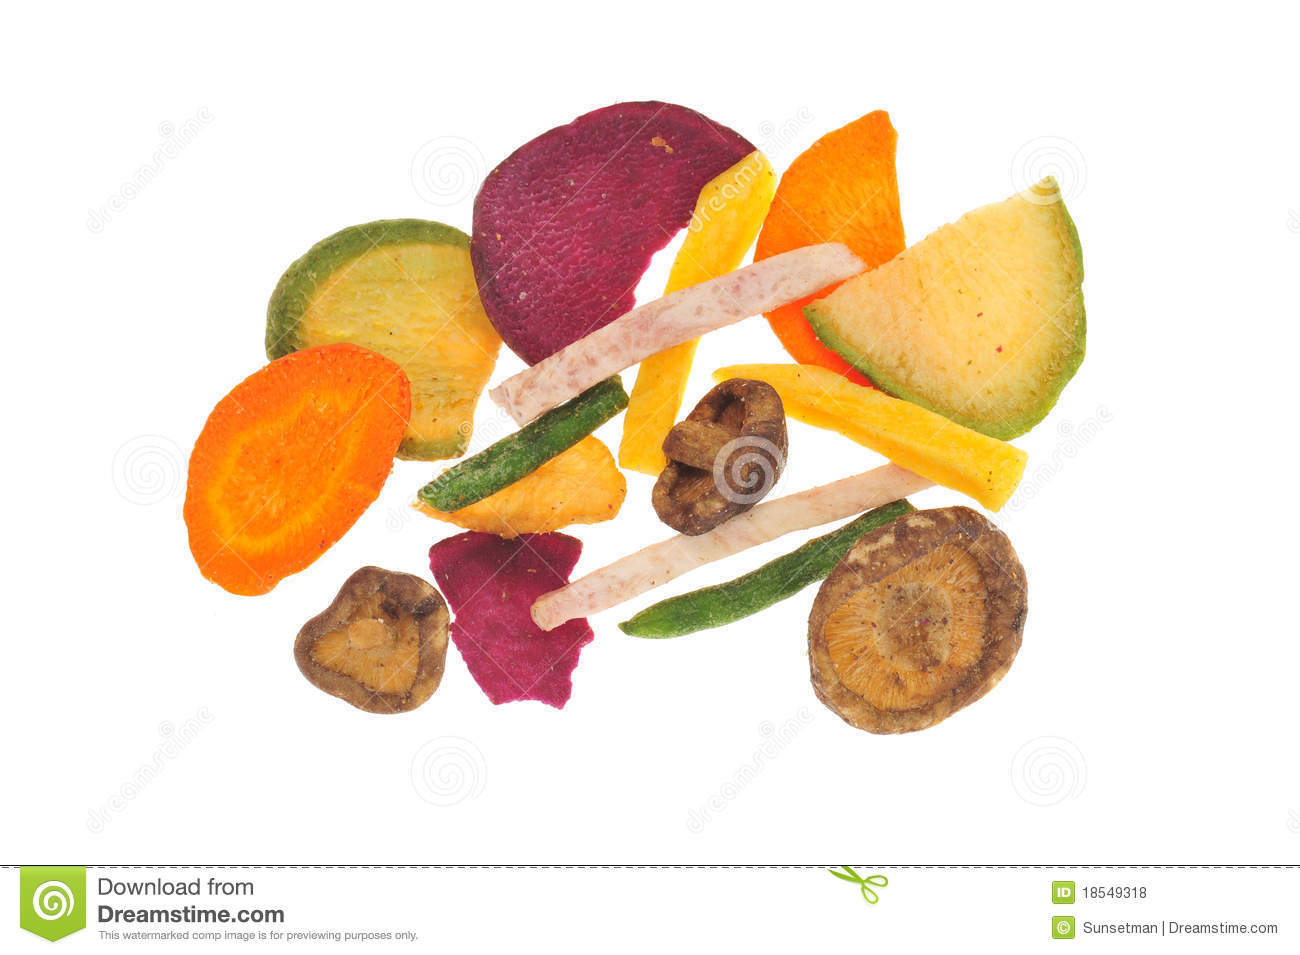 Dried Preserved Fruit Royalty Free Stock Photos - Image: 18549318